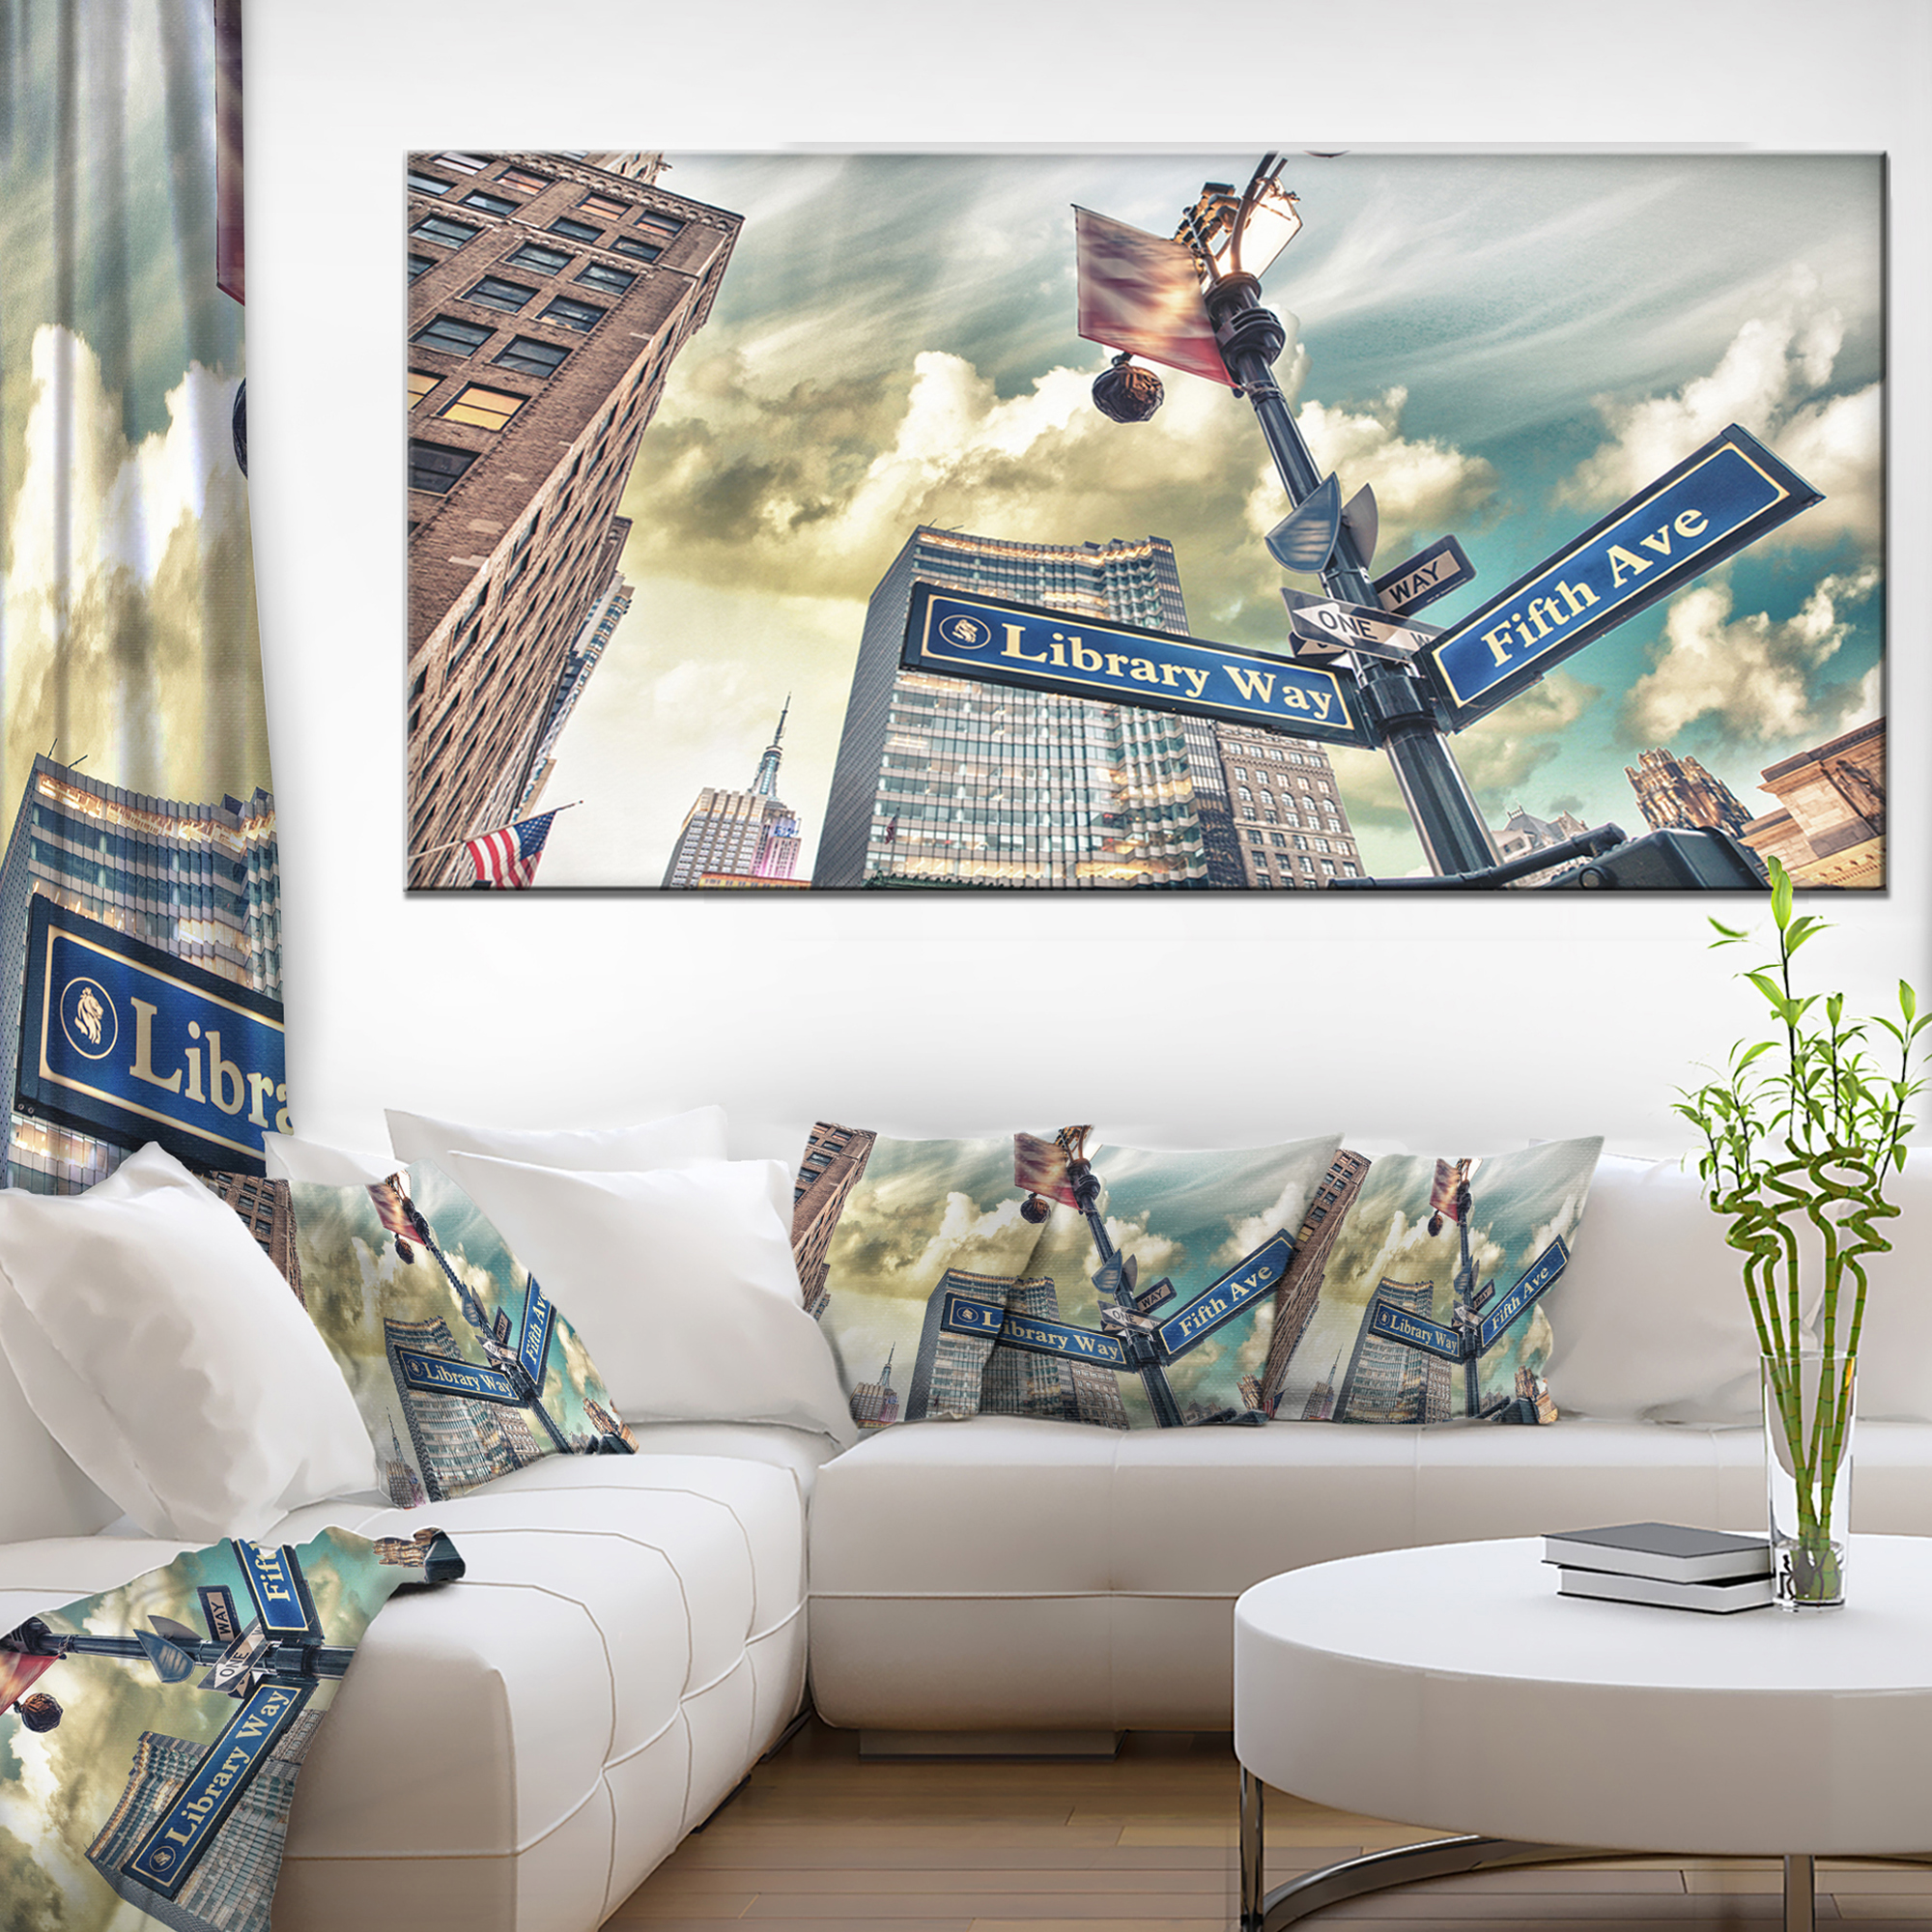 Library way and 5th avenue street signs modern cityscape canvas art print